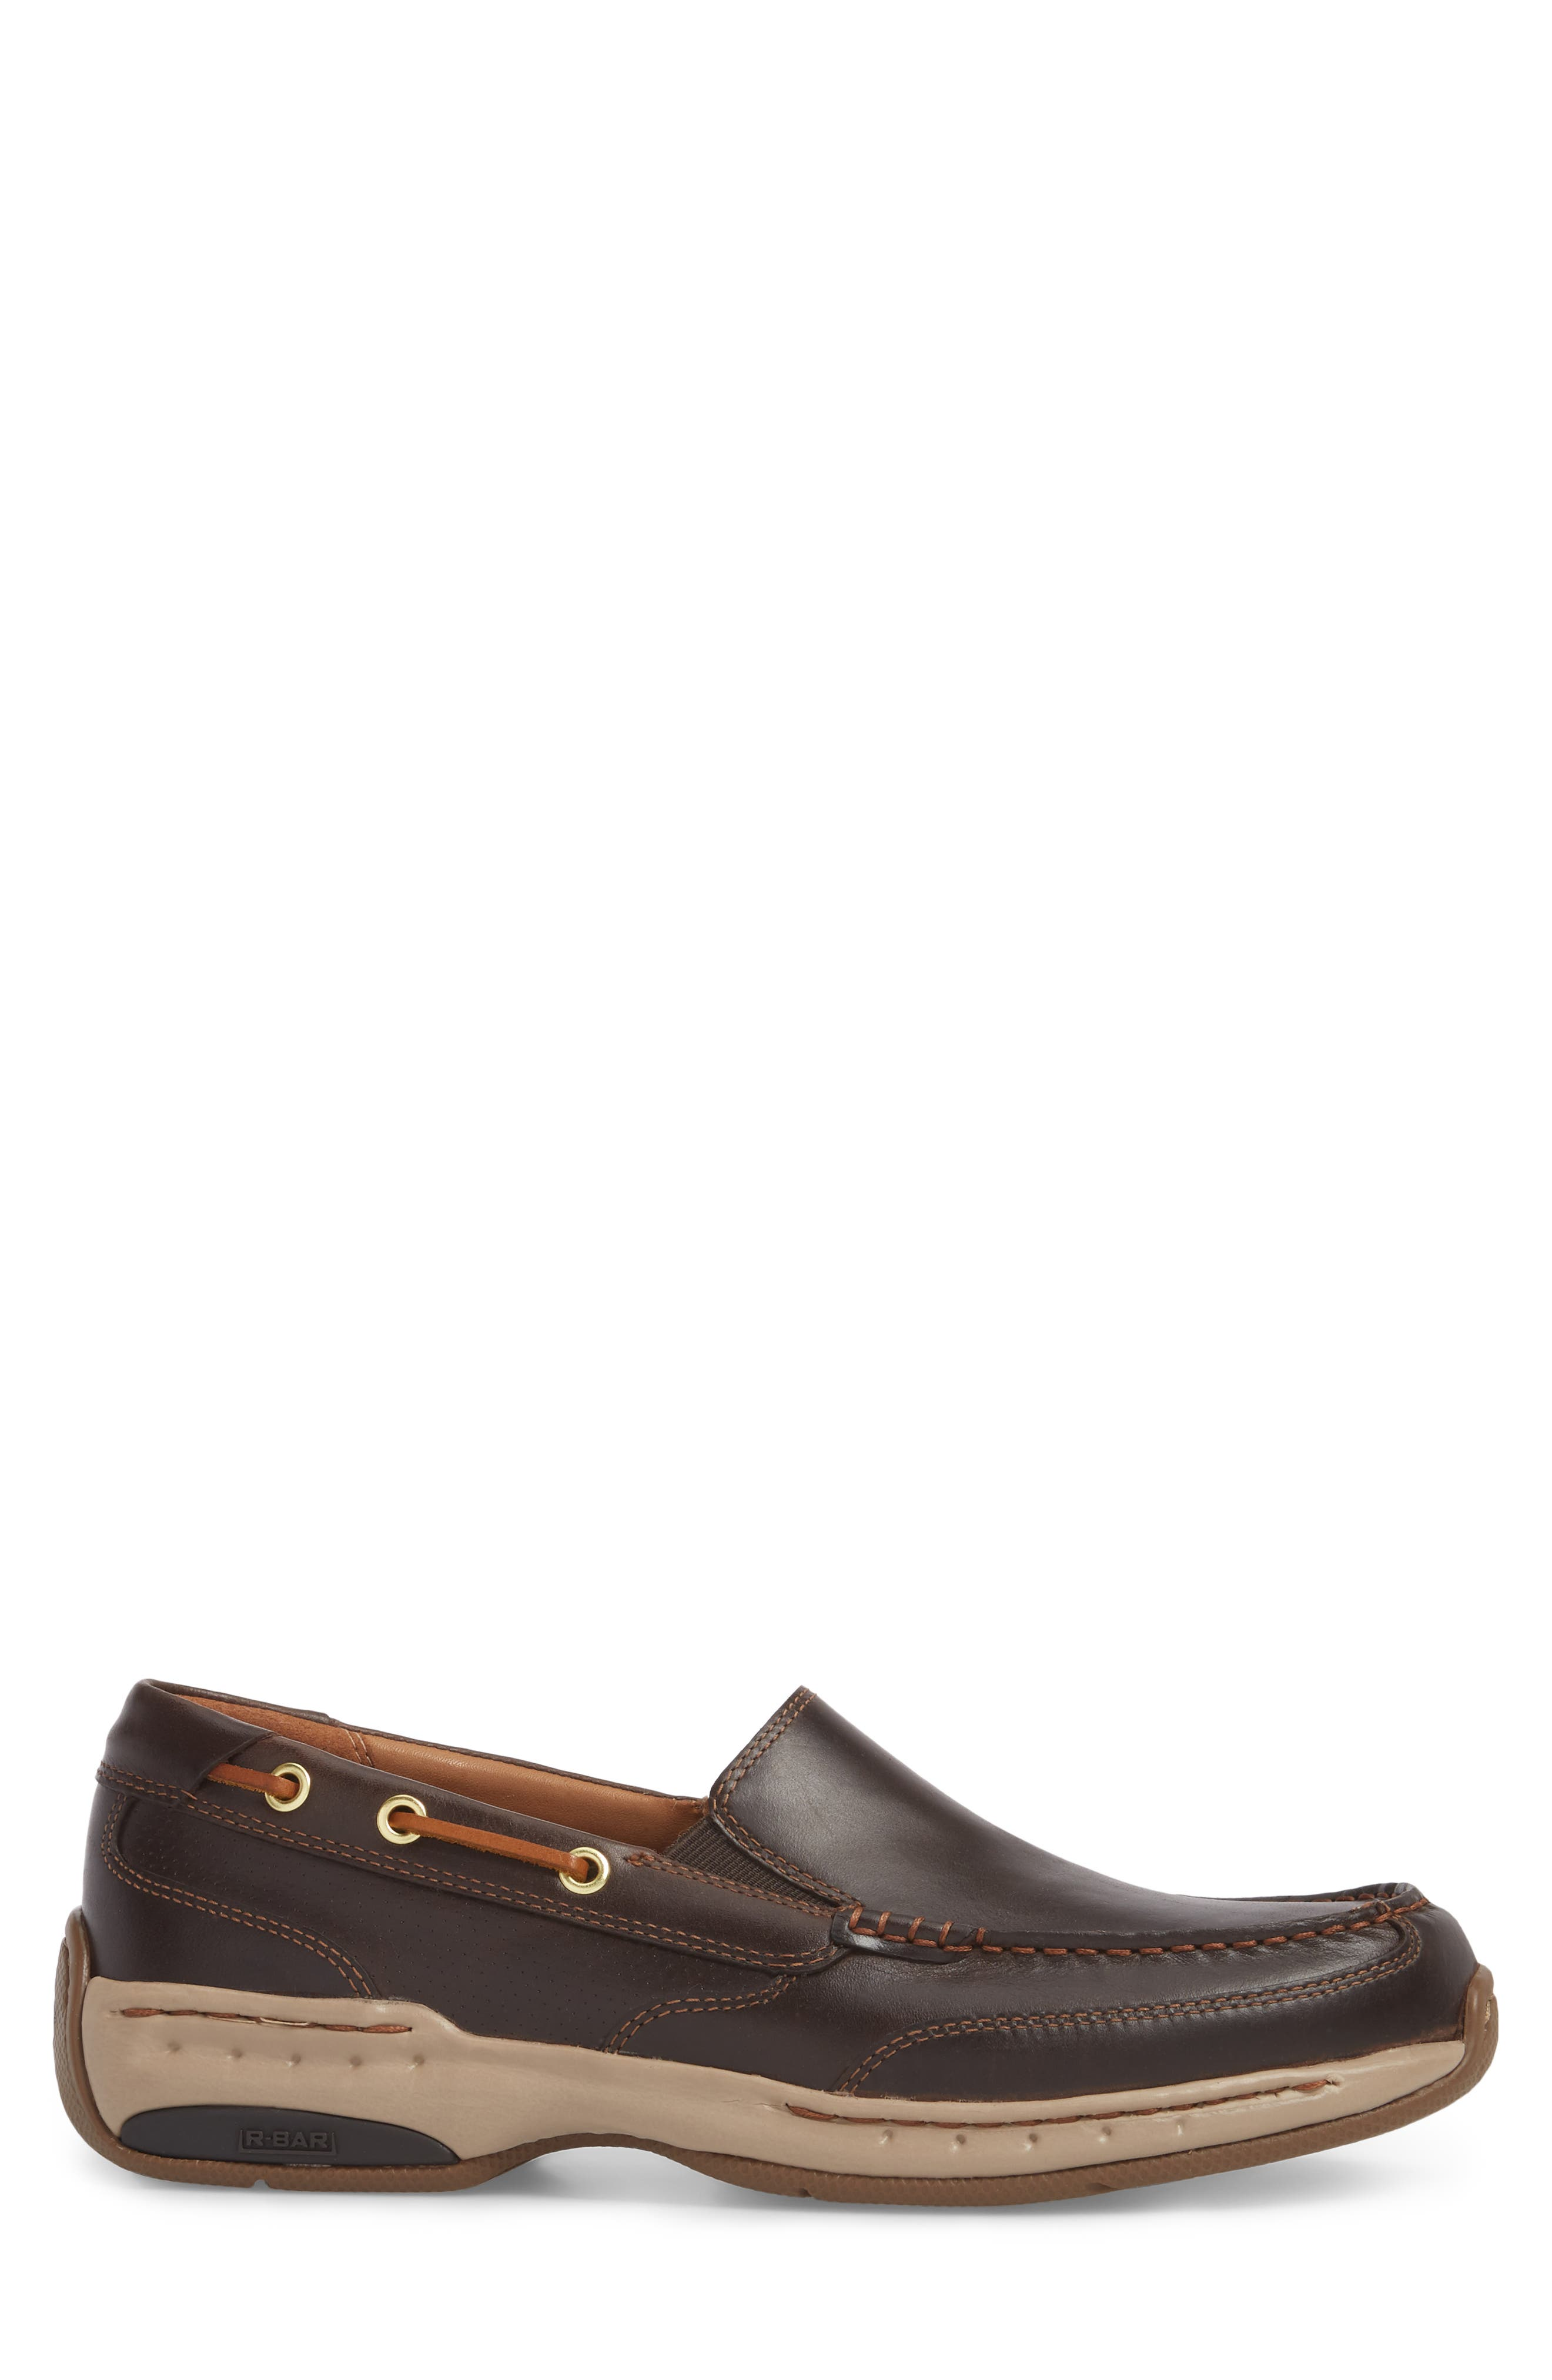 DUNHAM, Waterford Water Resistant Slip-On, Alternate thumbnail 3, color, TAN LEATHER